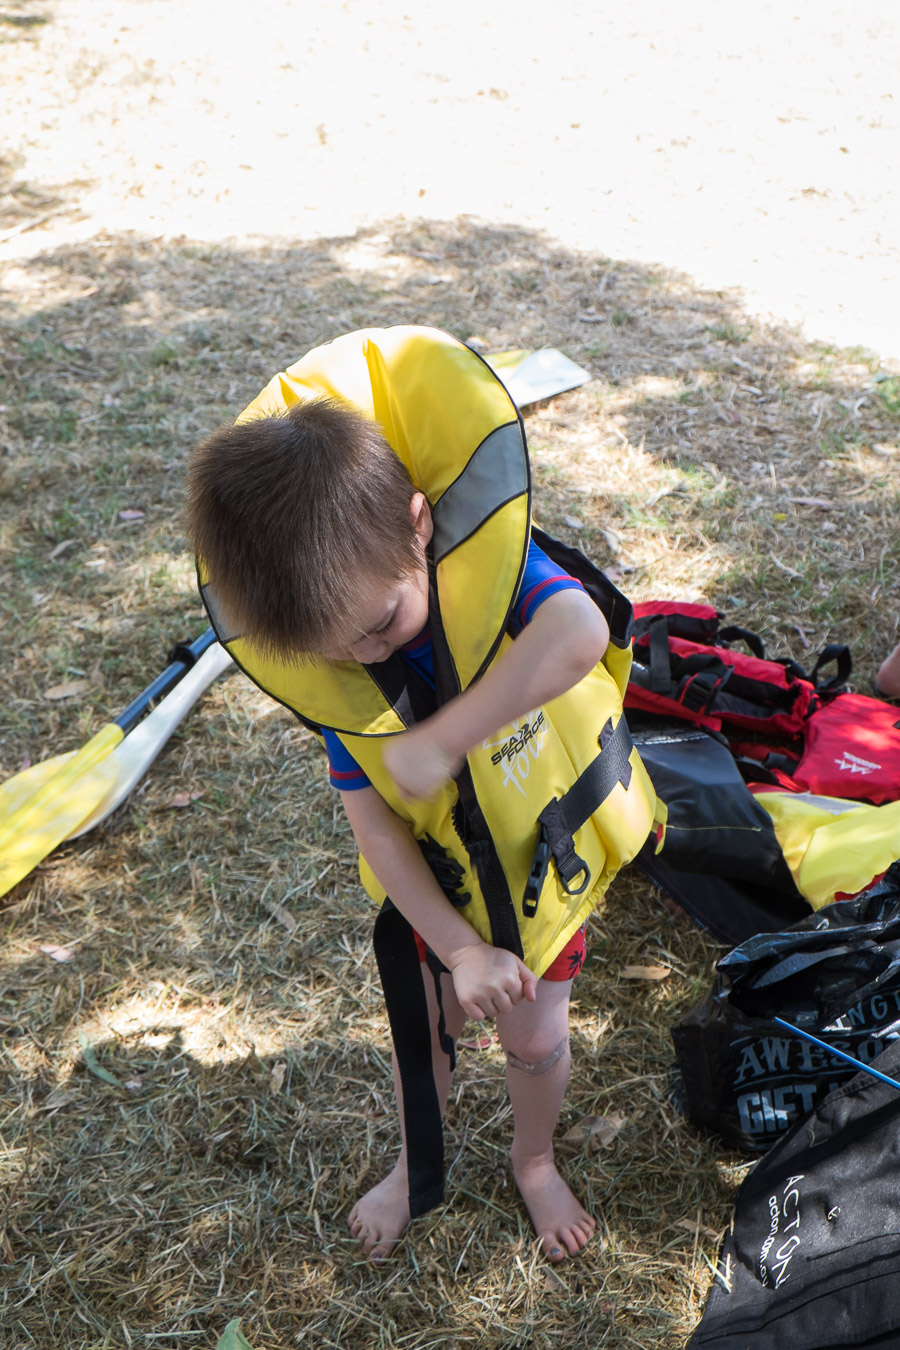 Caleb puts on his life jacket